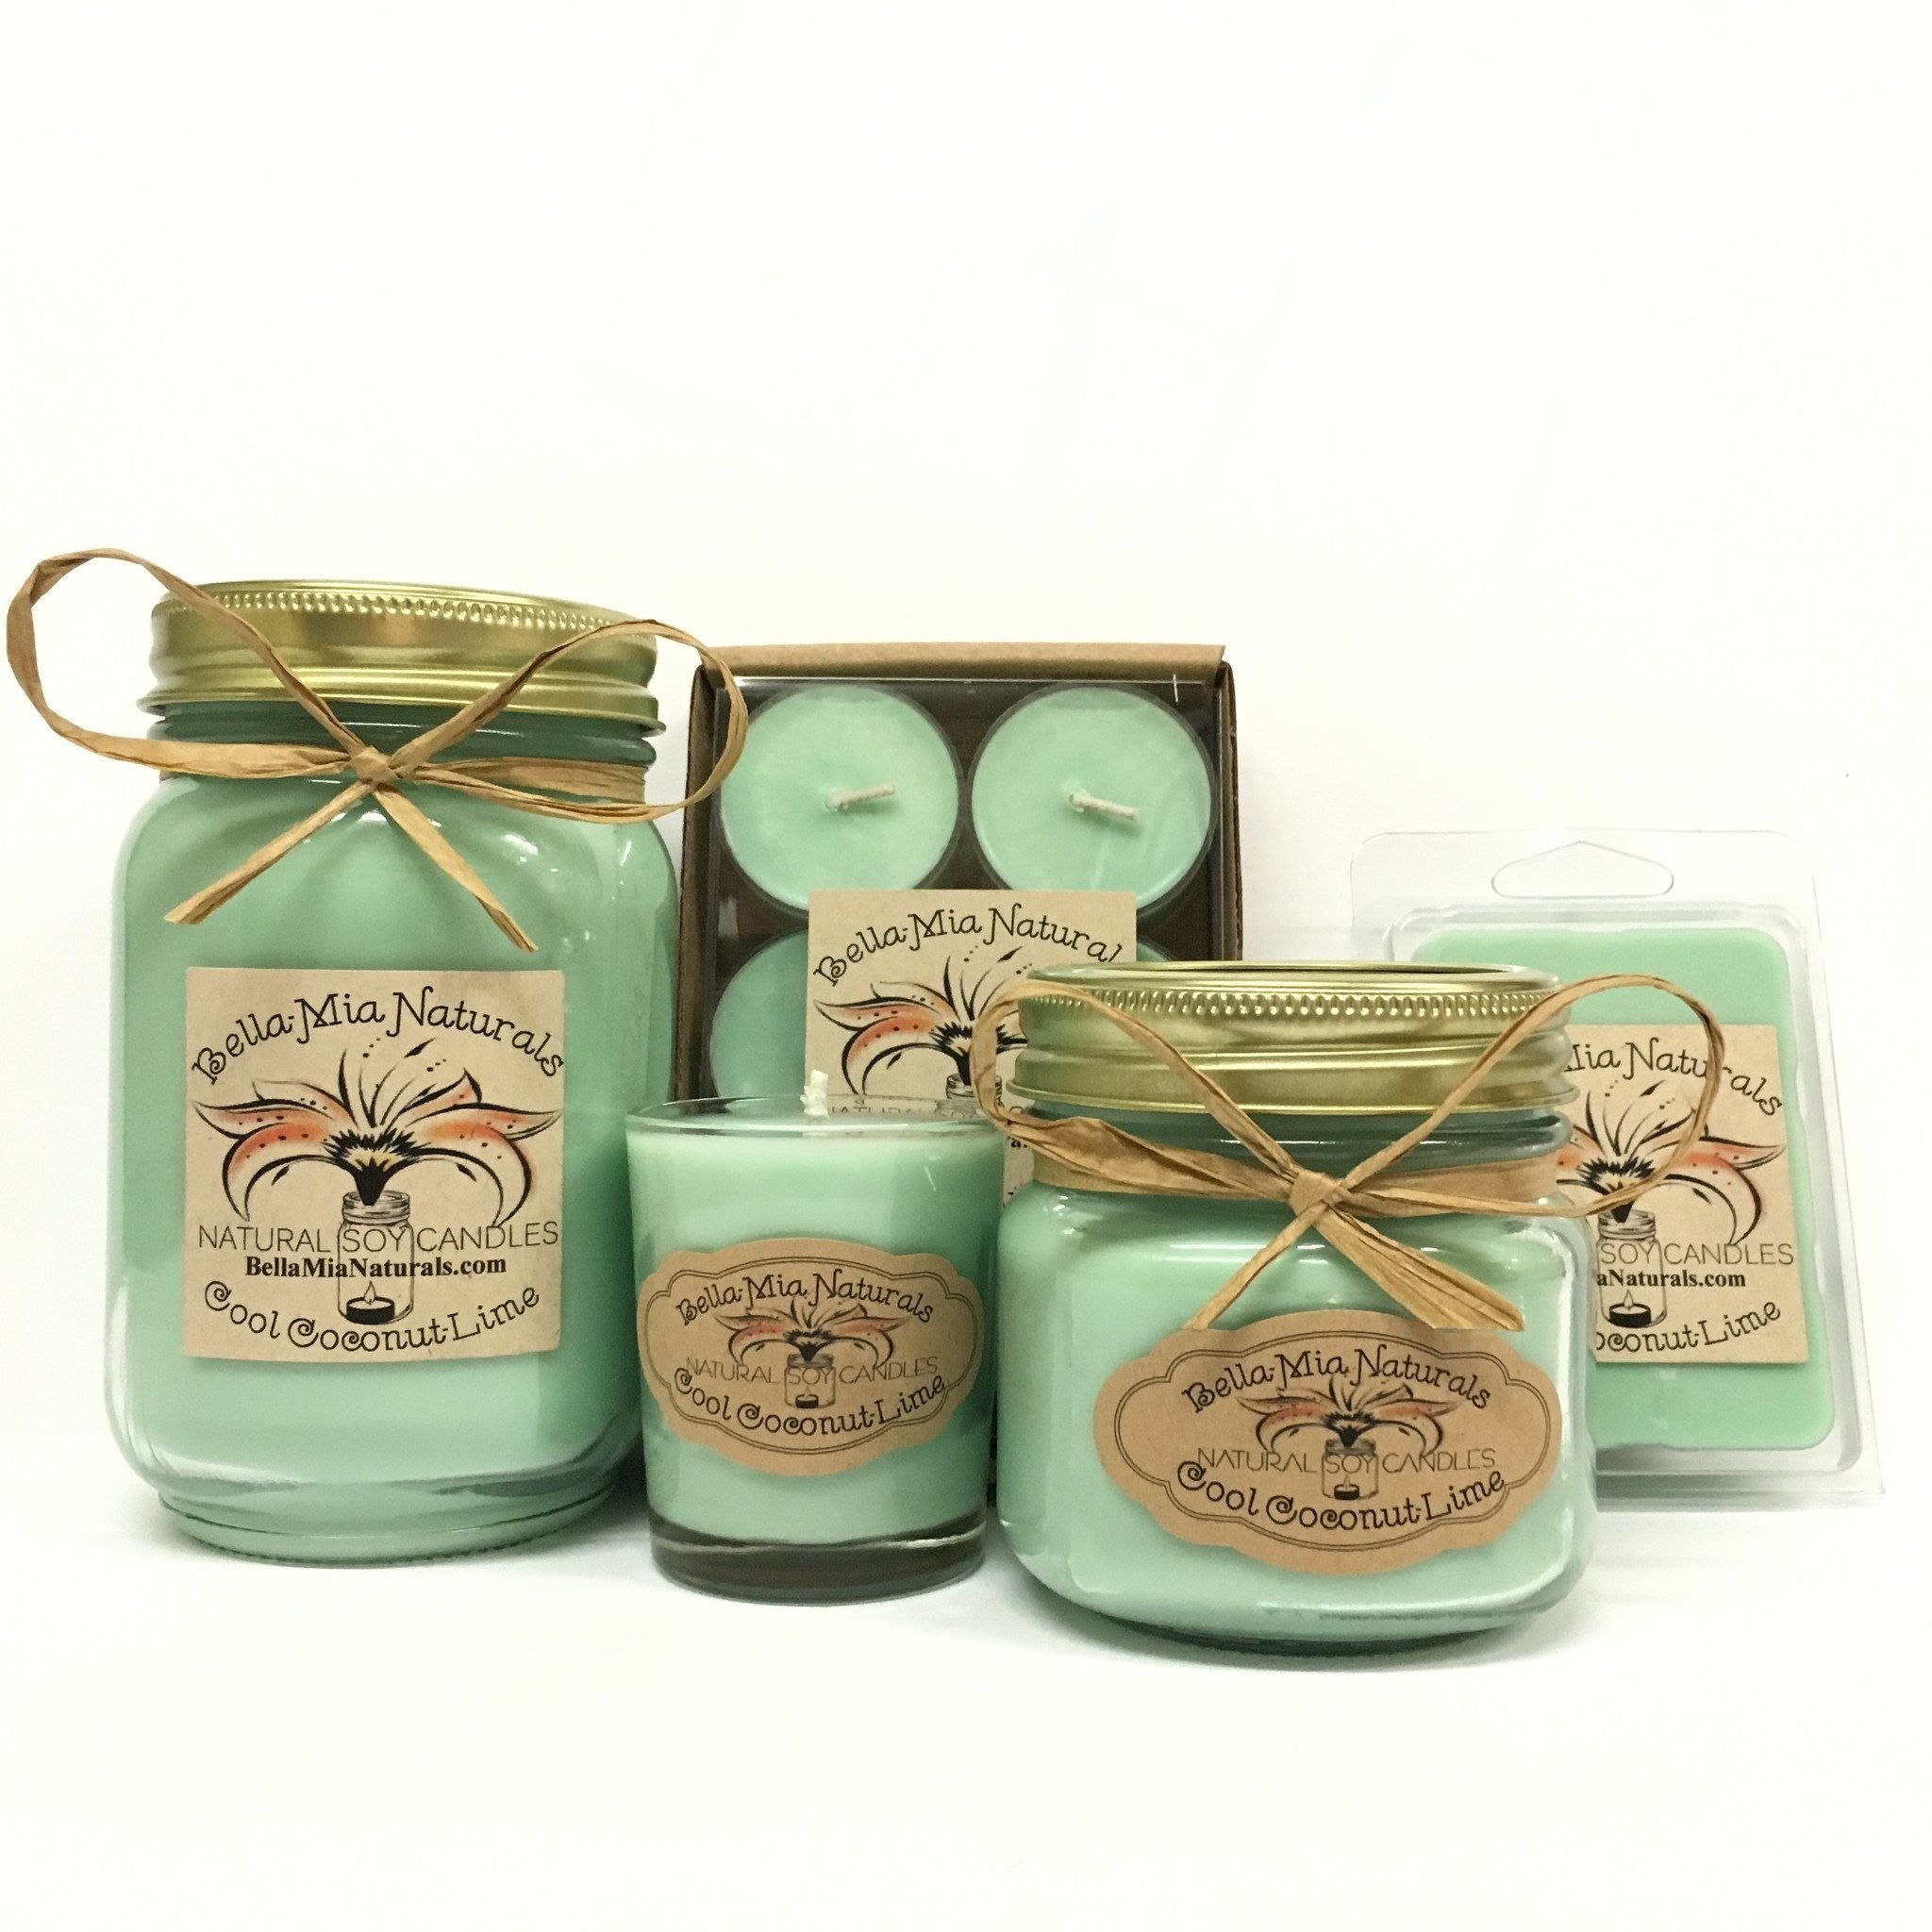 Cool Coconut-Lime Natural Hand Poured Soy Candles -  - Bella-Mia Naturals All Natural Soy Candles & Lip Balms - 1